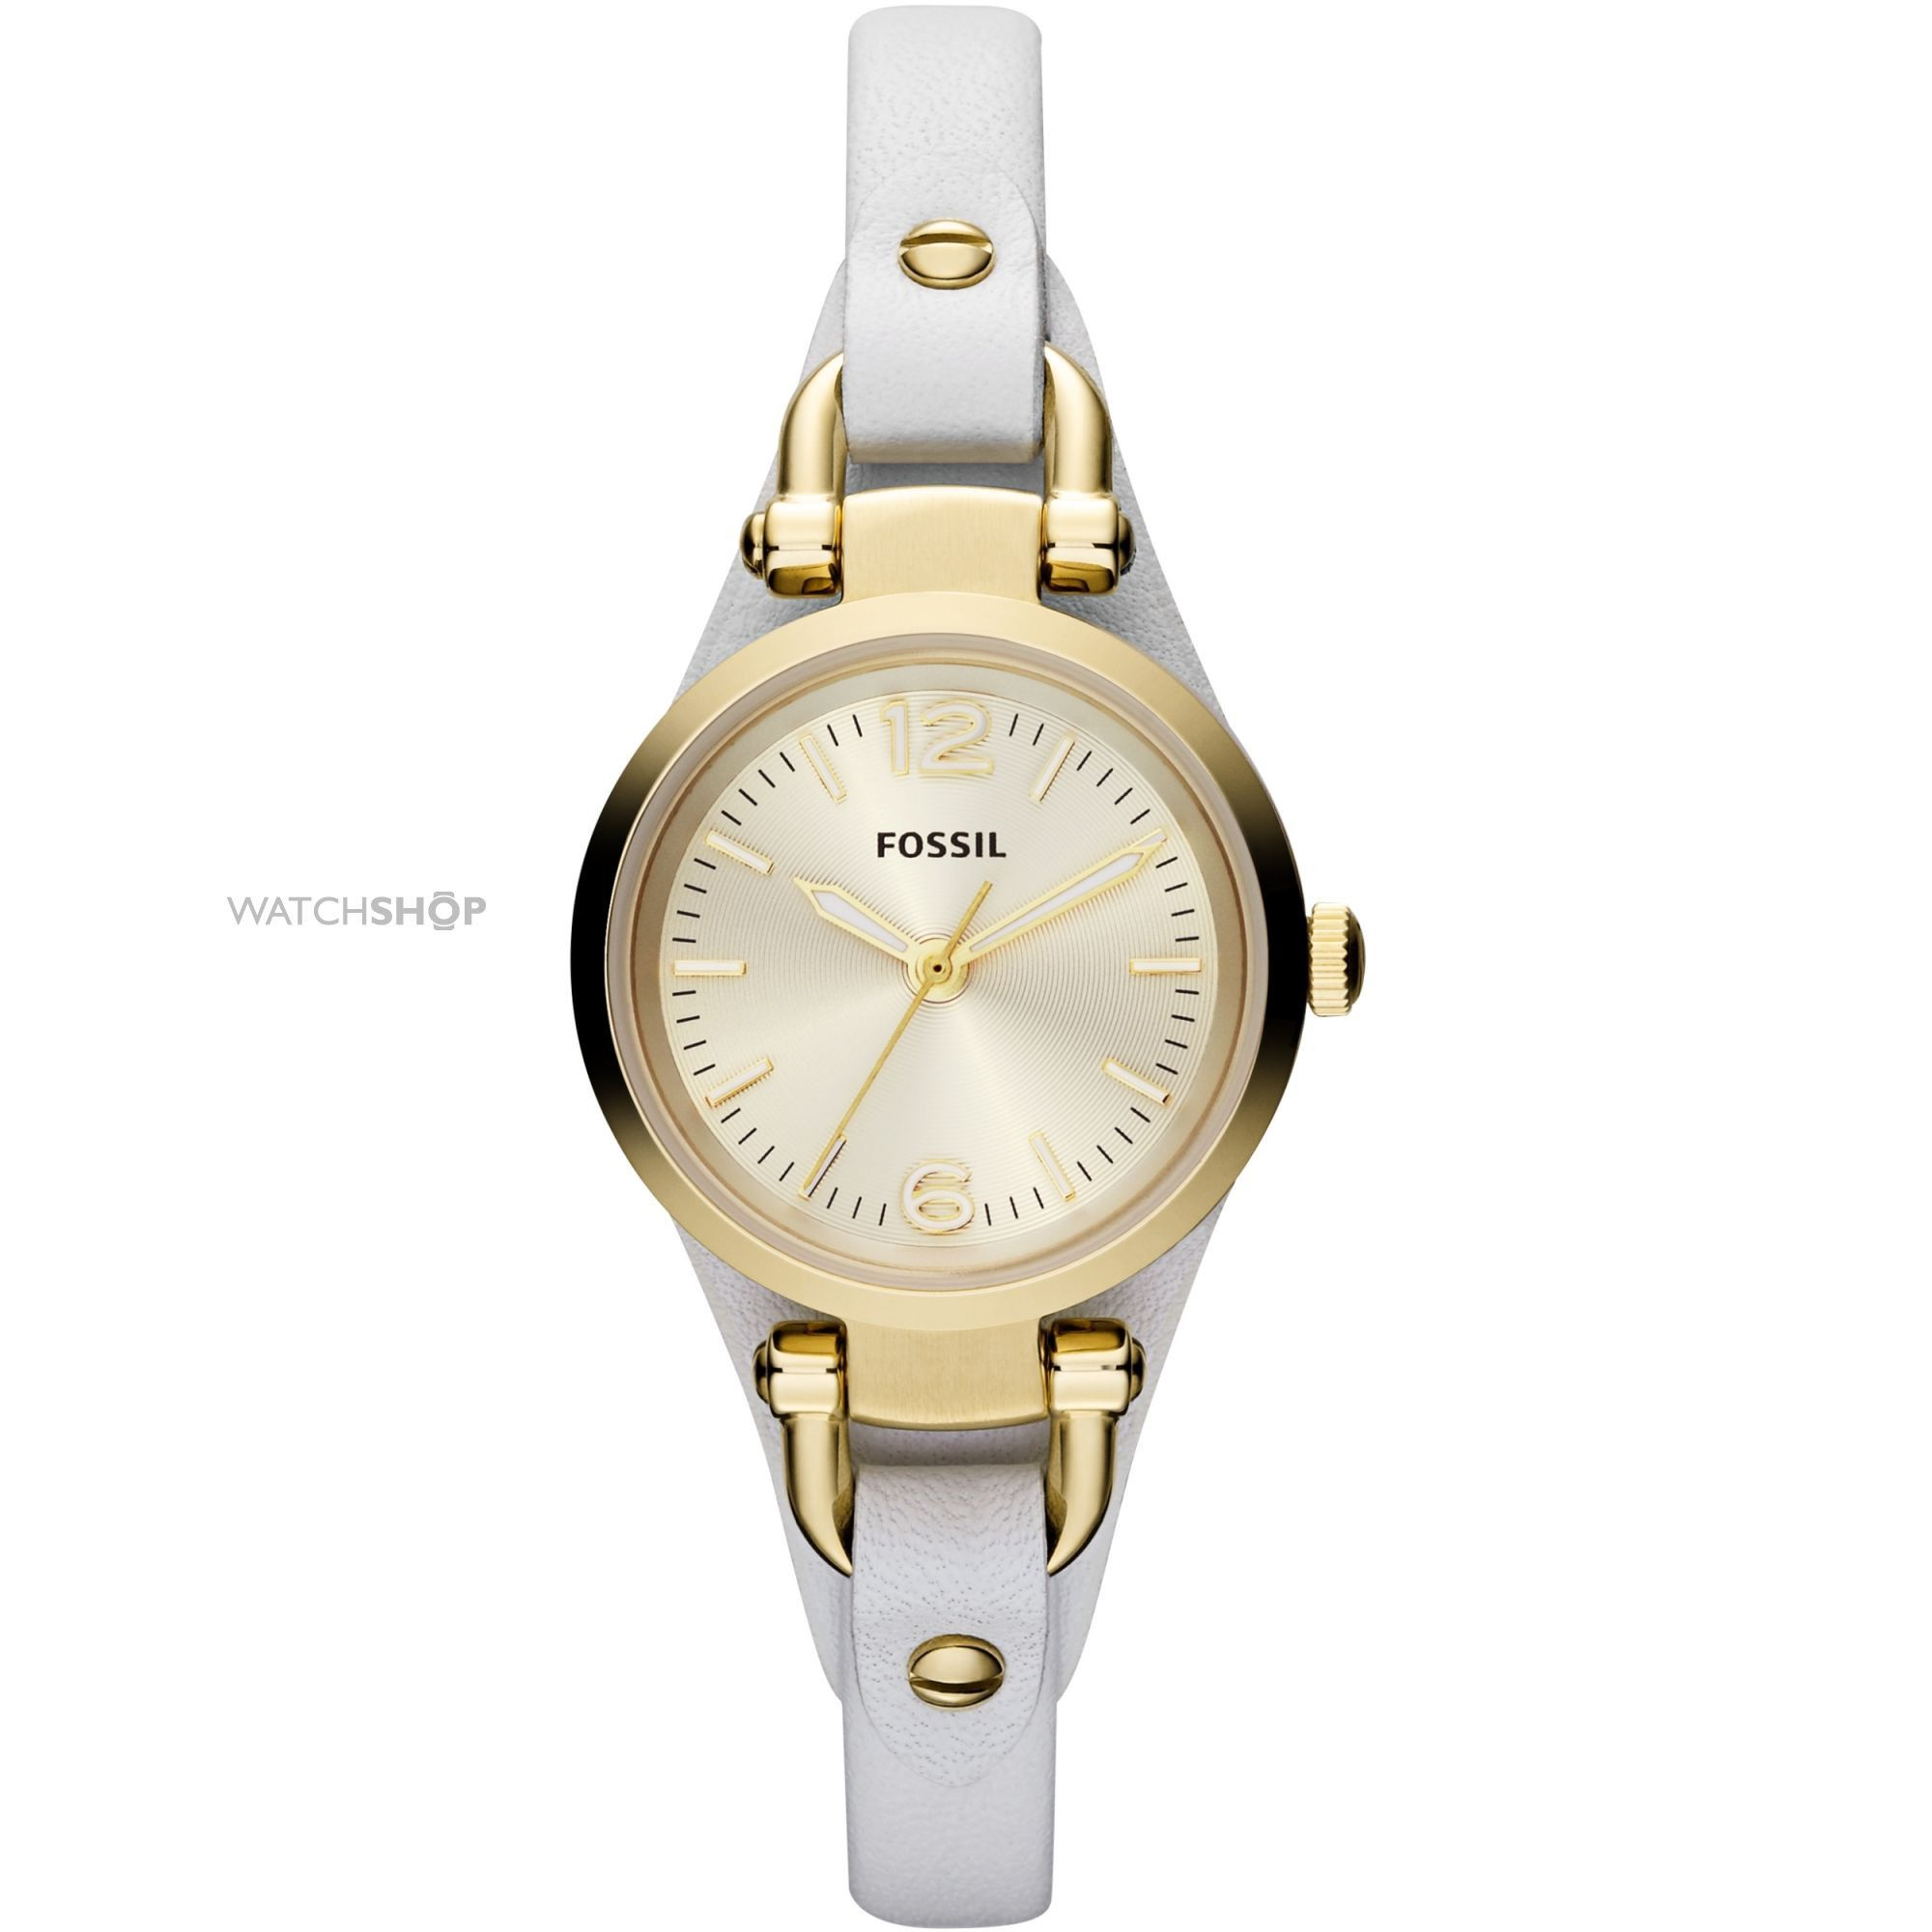 watch first ladies watches silver pearl jewels tiny beautiful my face white gift tone classic leather and watchshop of two body skagen a com was with modern strap mother